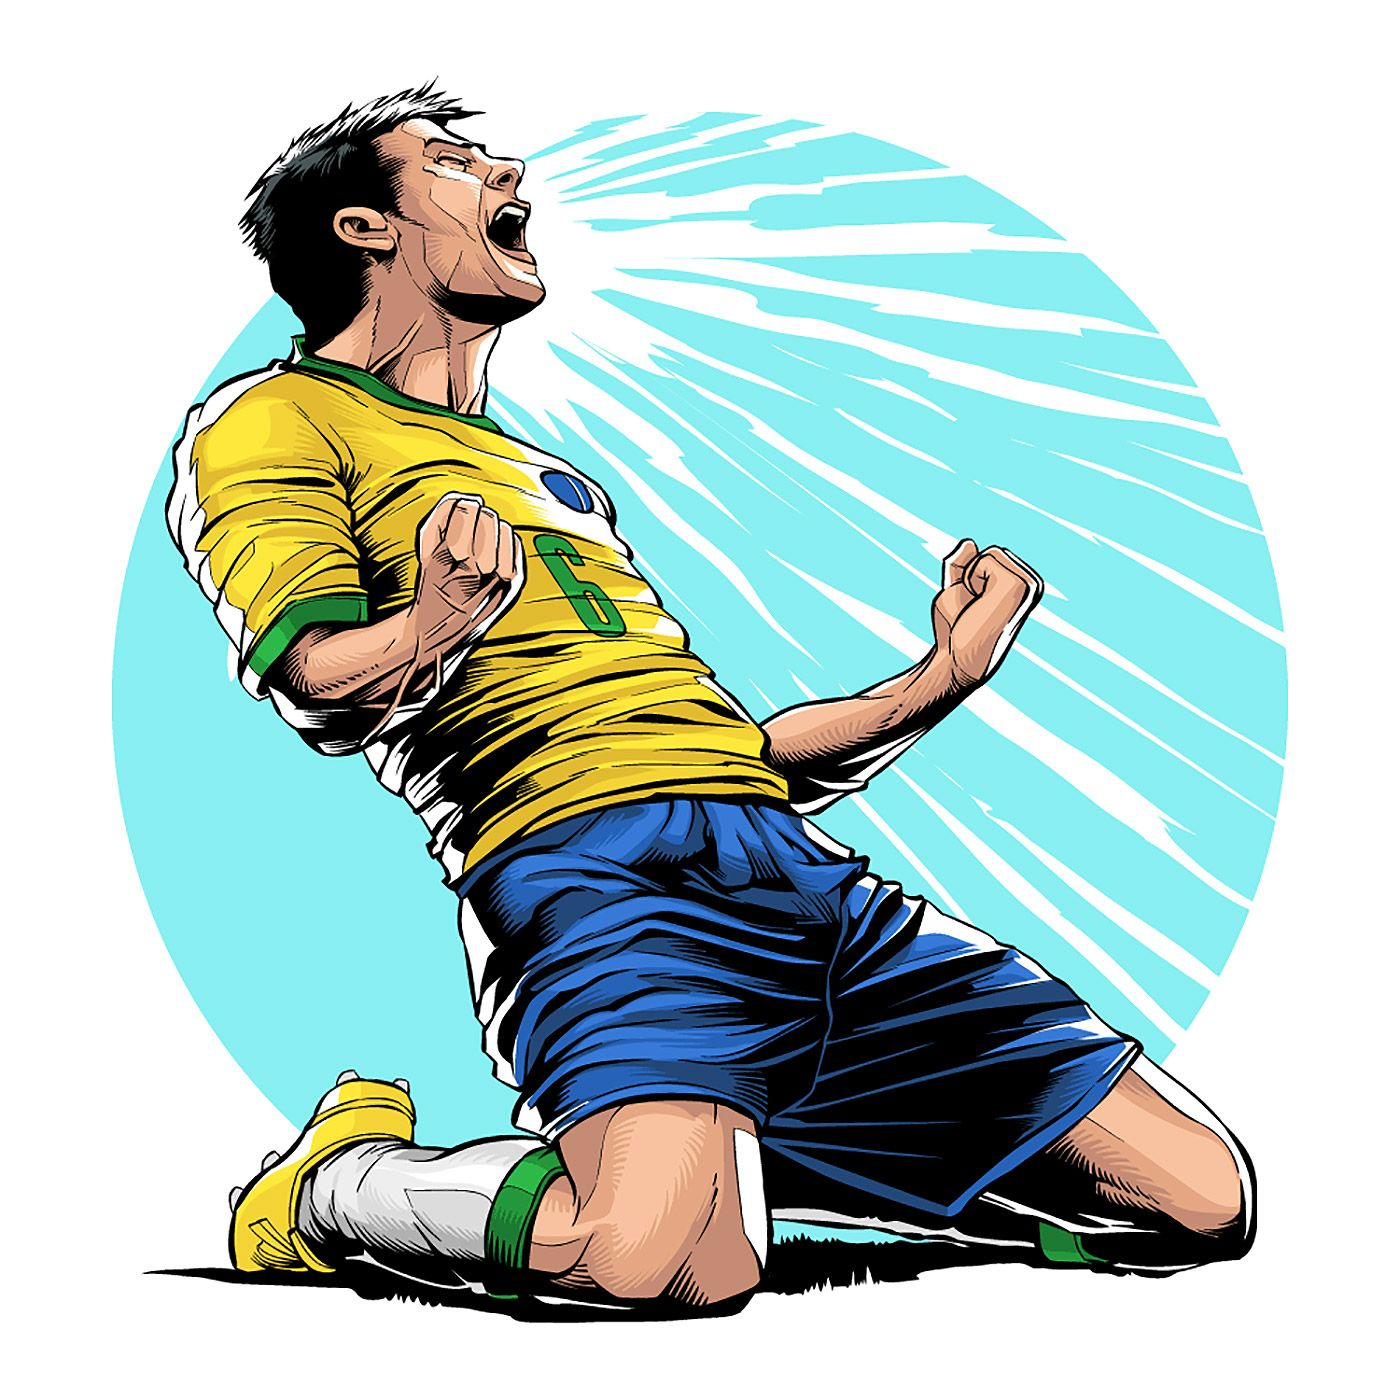 Soccer Illustrations By Cristiano Siqueira Daily Design Inspiration For Creatives Inspiration Gri In 2020 Football Illustration Football Logo Design Soccer Artwork